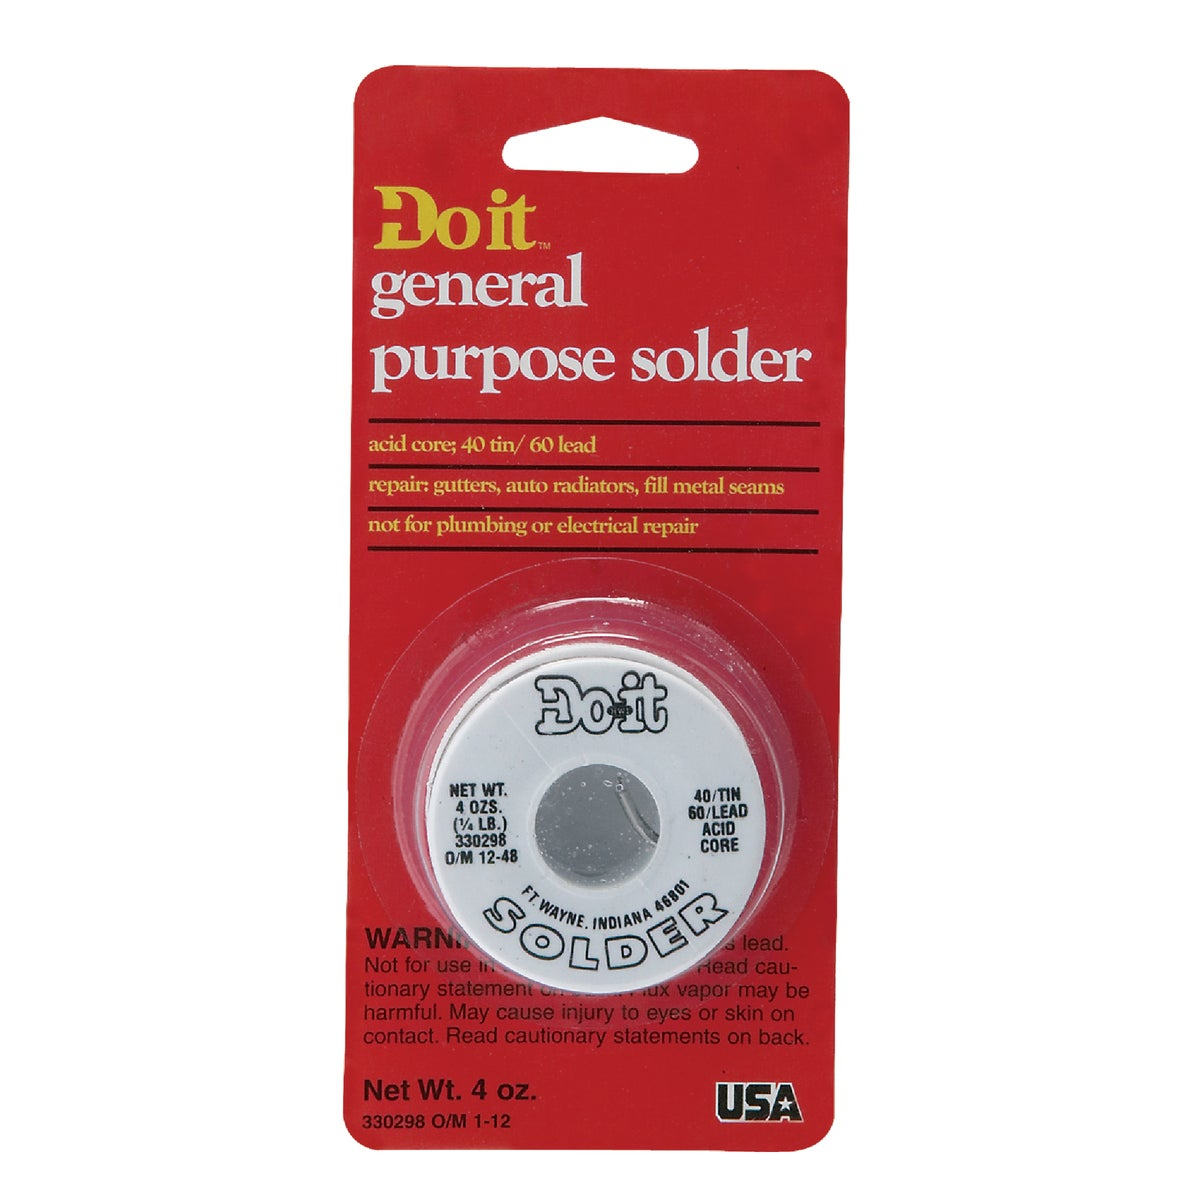 Do-It/Oatey 1/4LB 40/60 AC SOLDER 330298